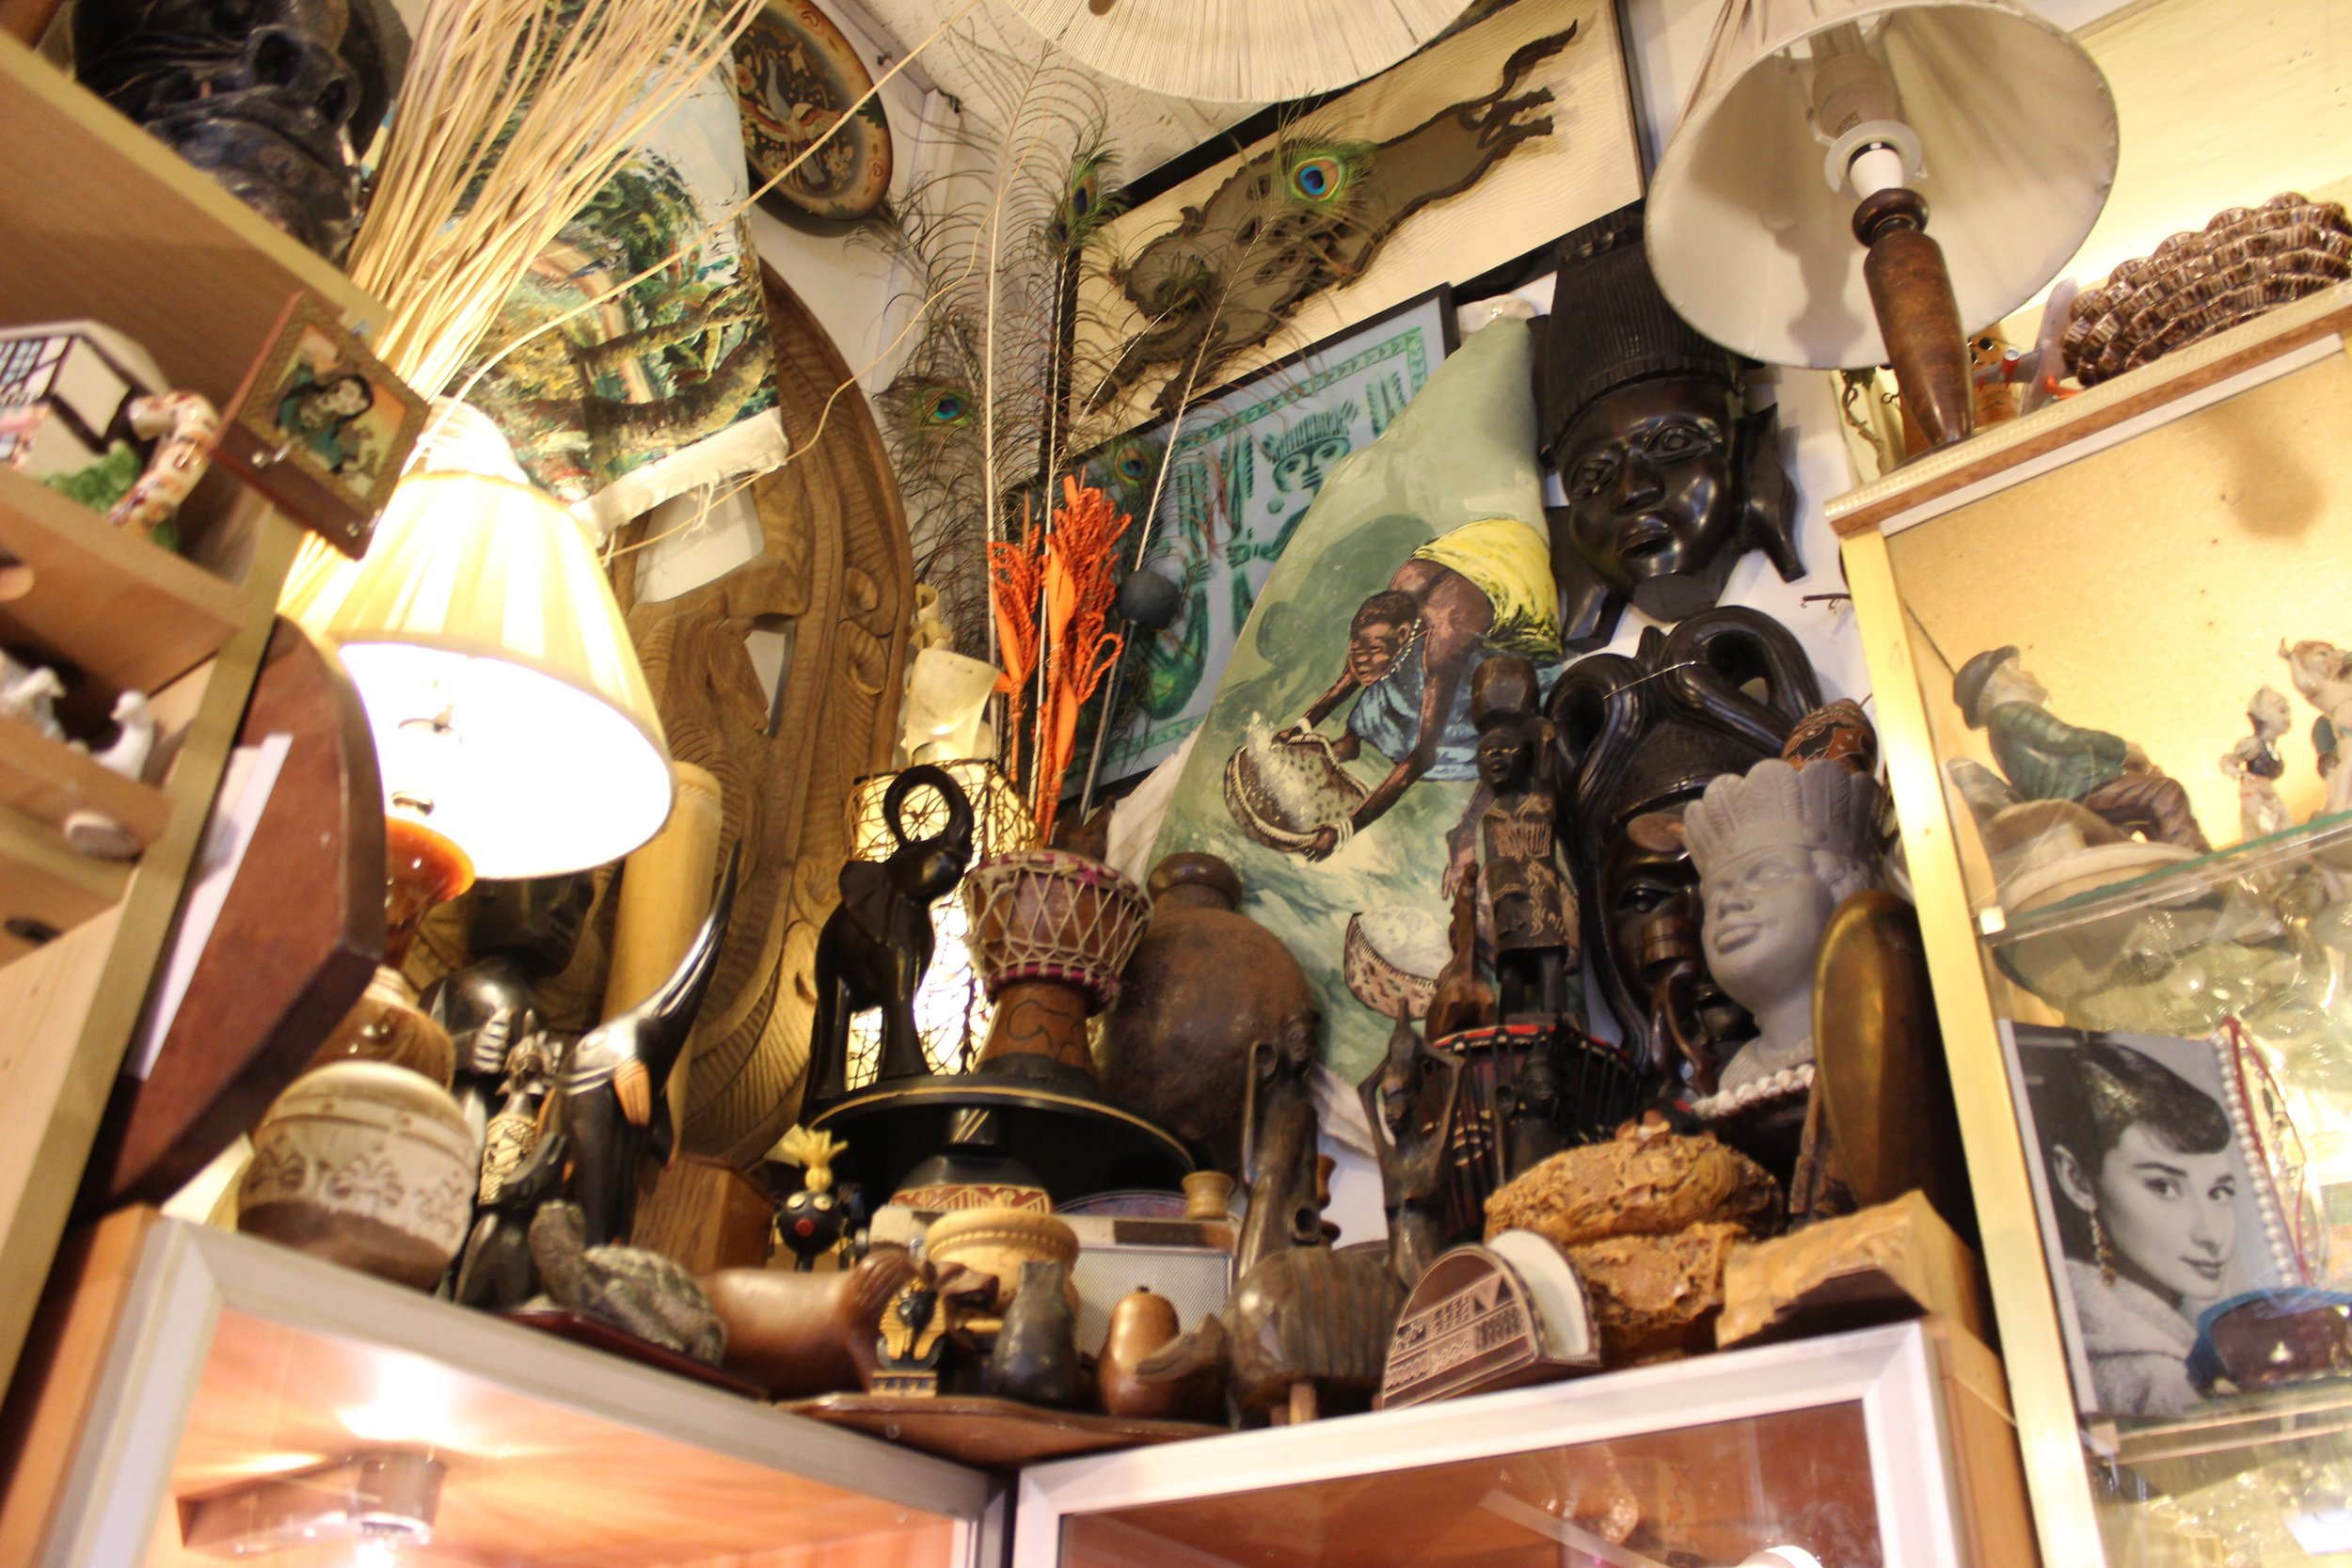 Ecelctica Bric a brac records collectibles and antiques shop in battersea South West Lonodn Club Card 7.jpg